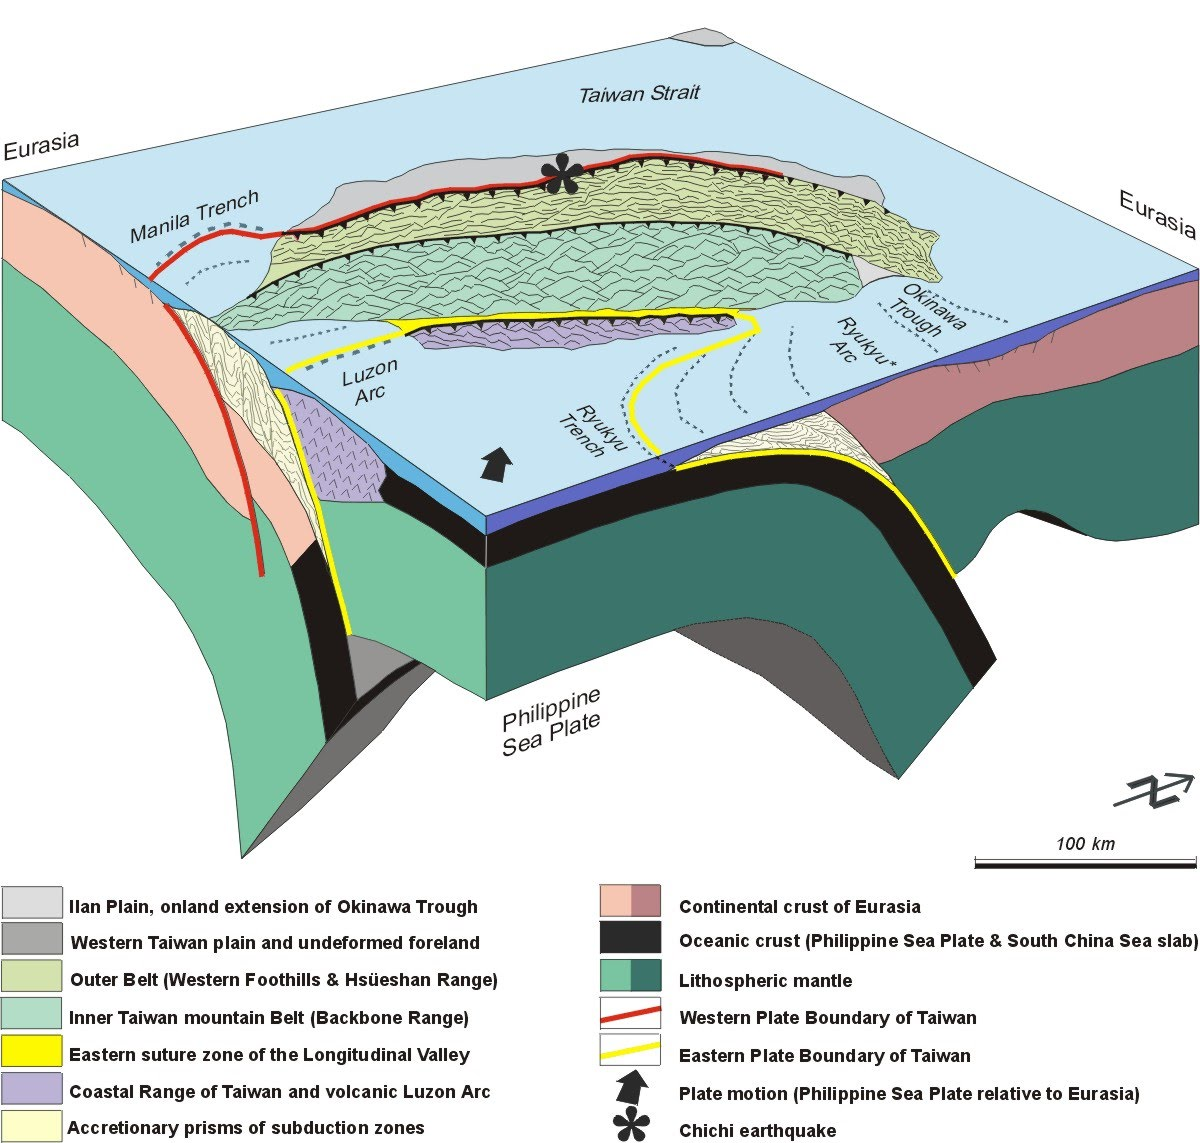 Plateconvergenceintaiwan jacquesangelier plate tectonic situation of taiwan schematic block diagram illustrating the lithospheric structure of taiwan the asthenosphere is left transparent pooptronica